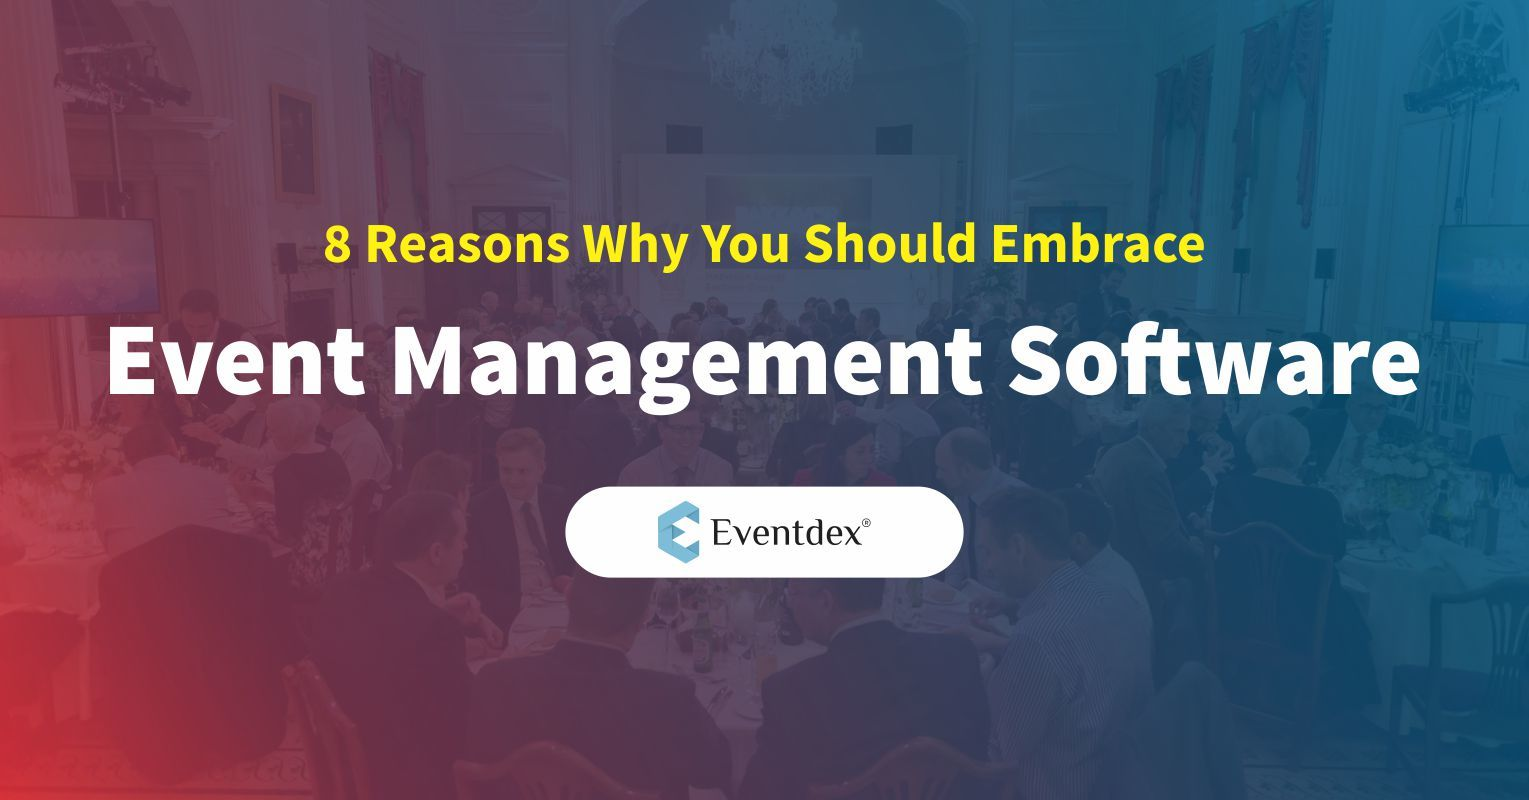 8 Reasons Why You Should Embrace Event Management Software